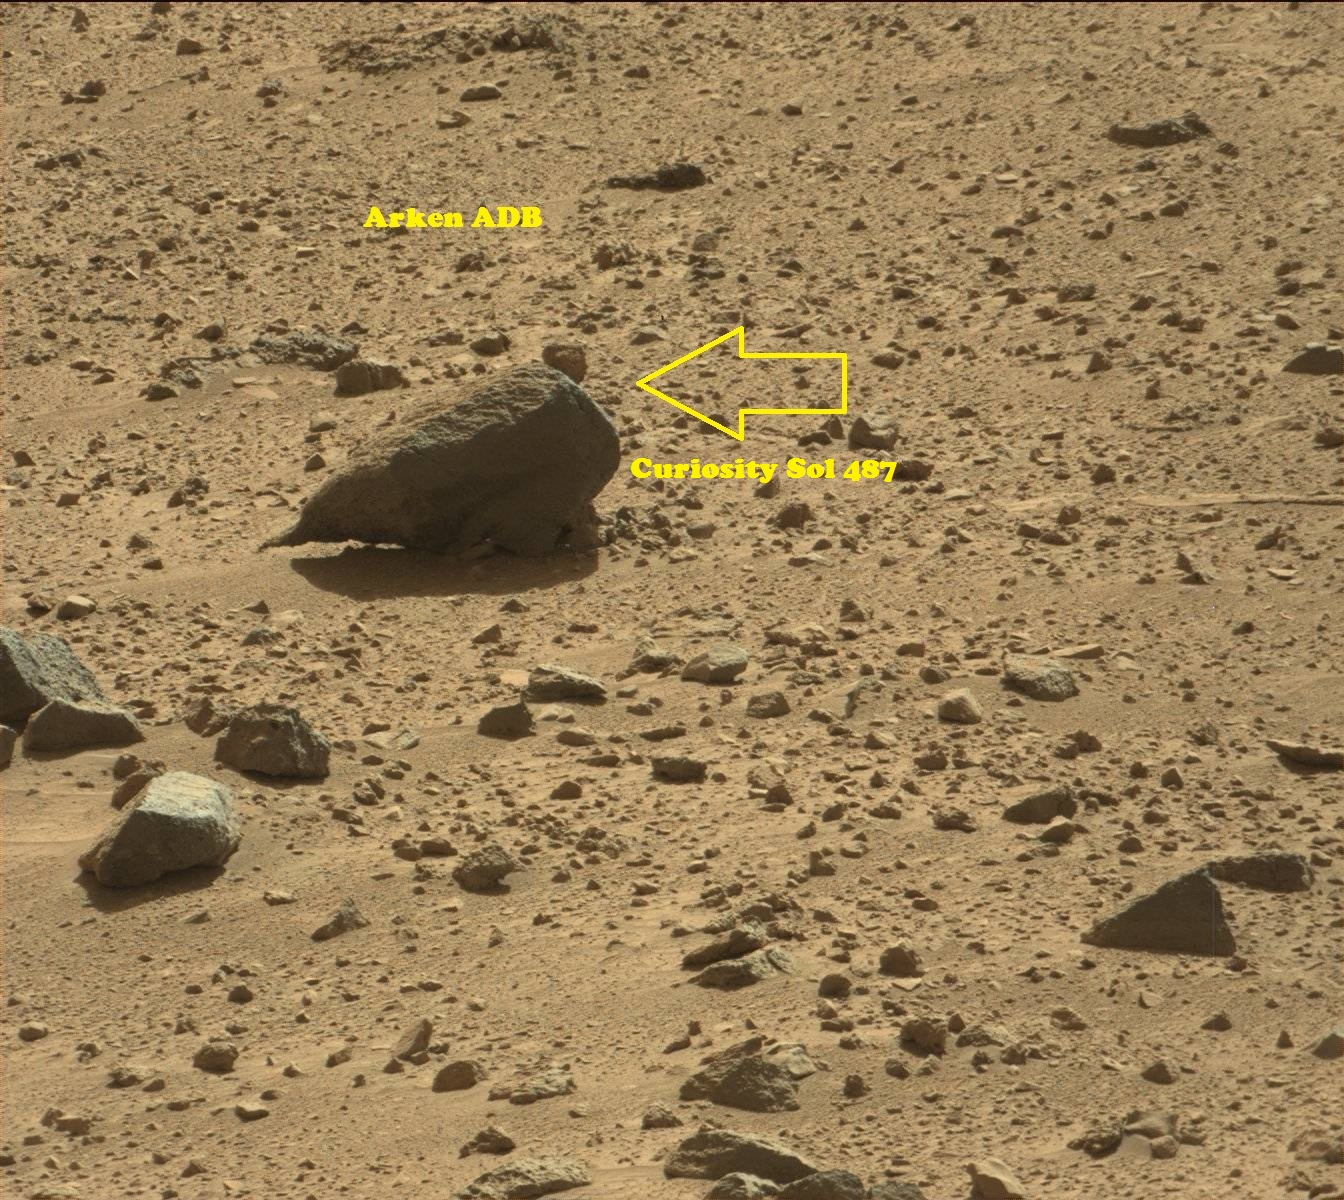 Something (Curiosity Rover) has moved on Mars!, page 1